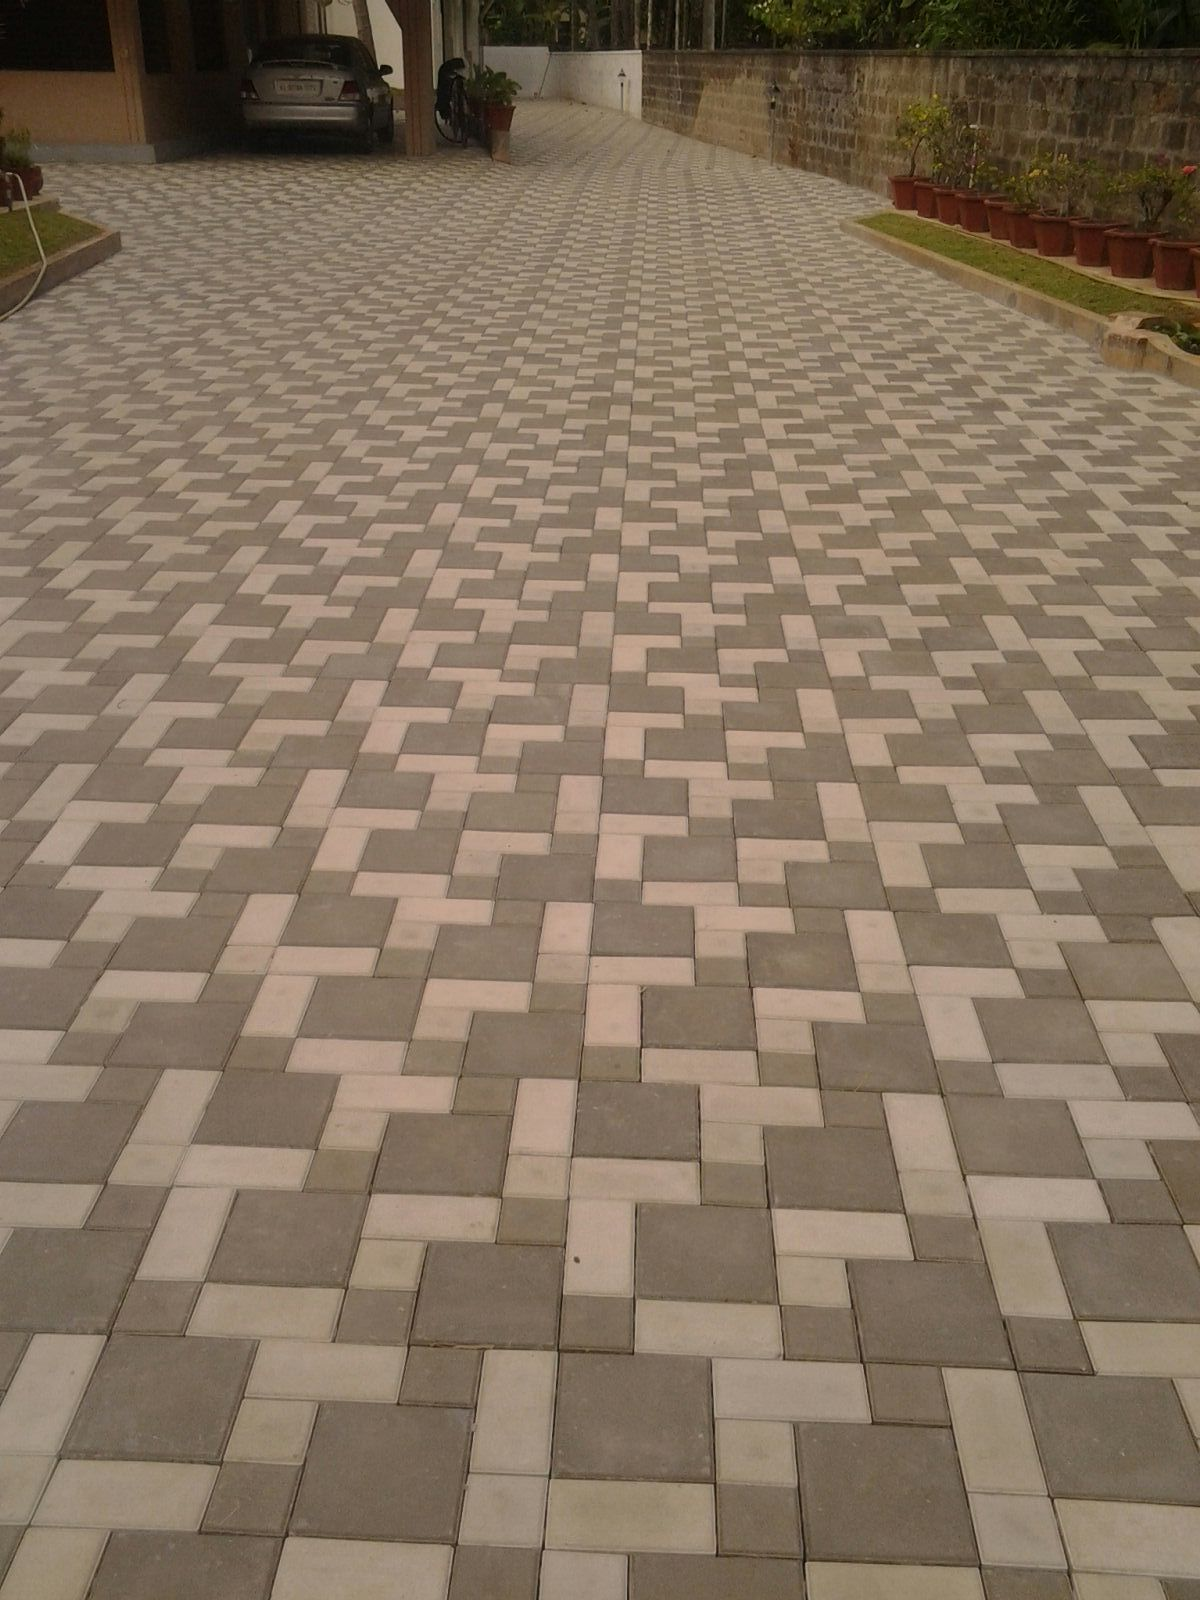 Paving Tiles Porch Tile Paving Paving Stones